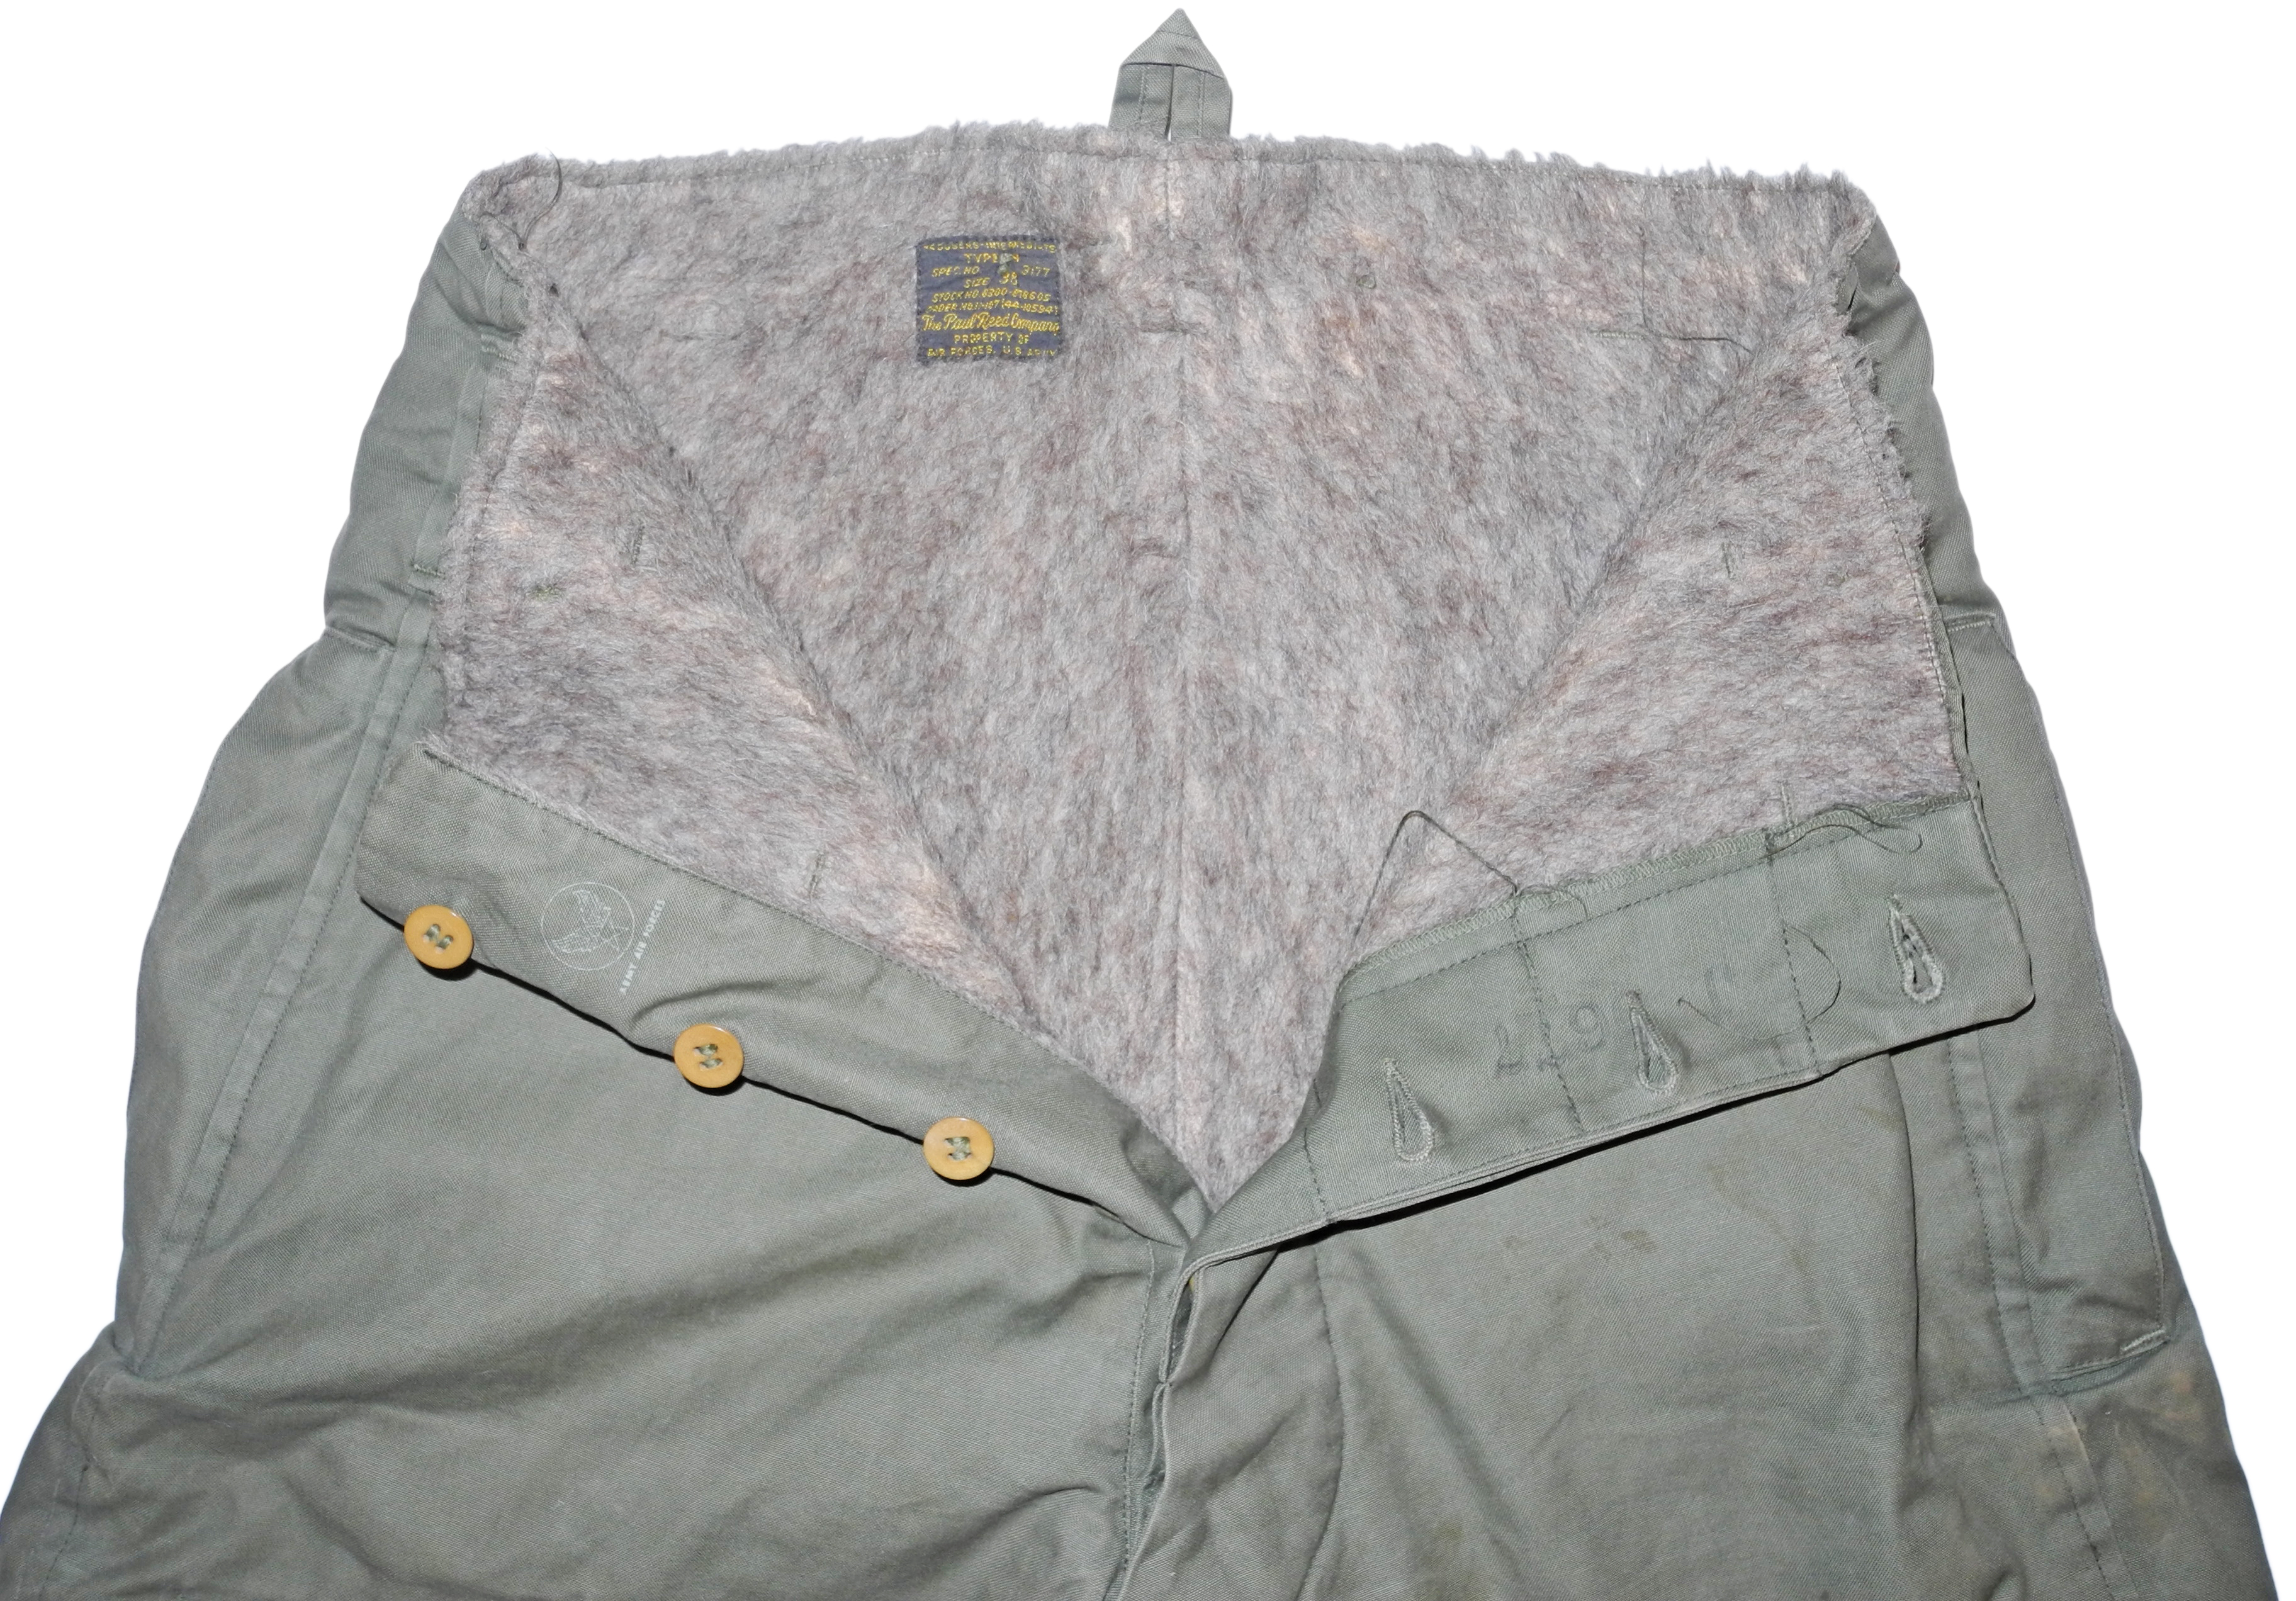 AAF Type A-9 flying suit pants